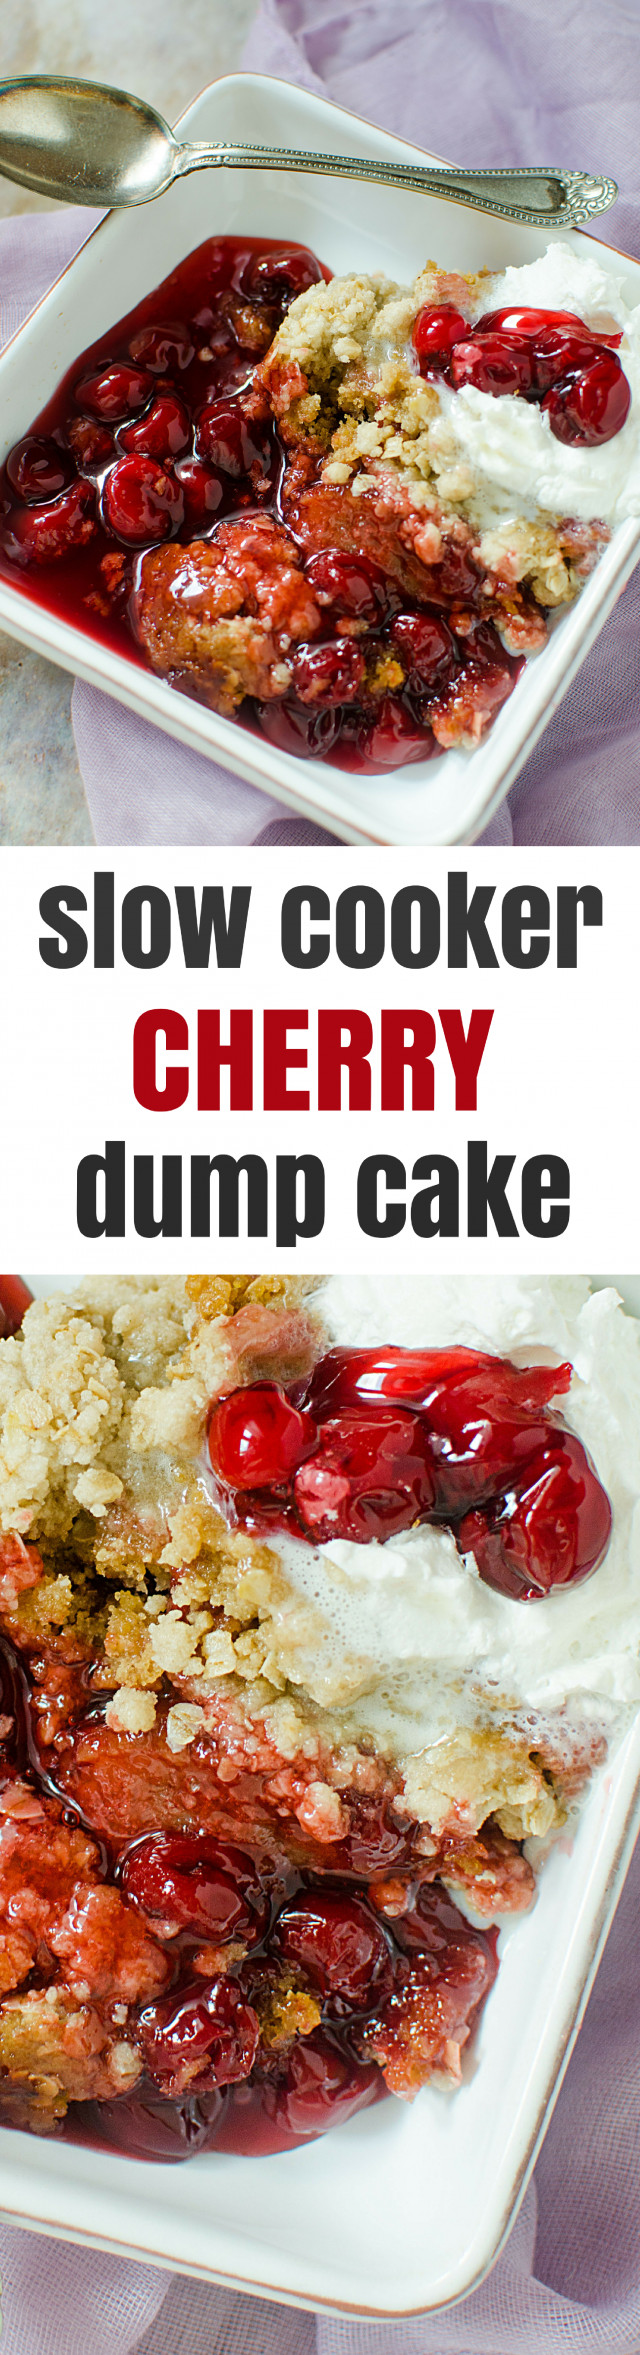 Slow Cooker Cake Recipes With Yellow Cake Mix  Slow Cooker Cherry Cake Mix Dump Cake Recipe